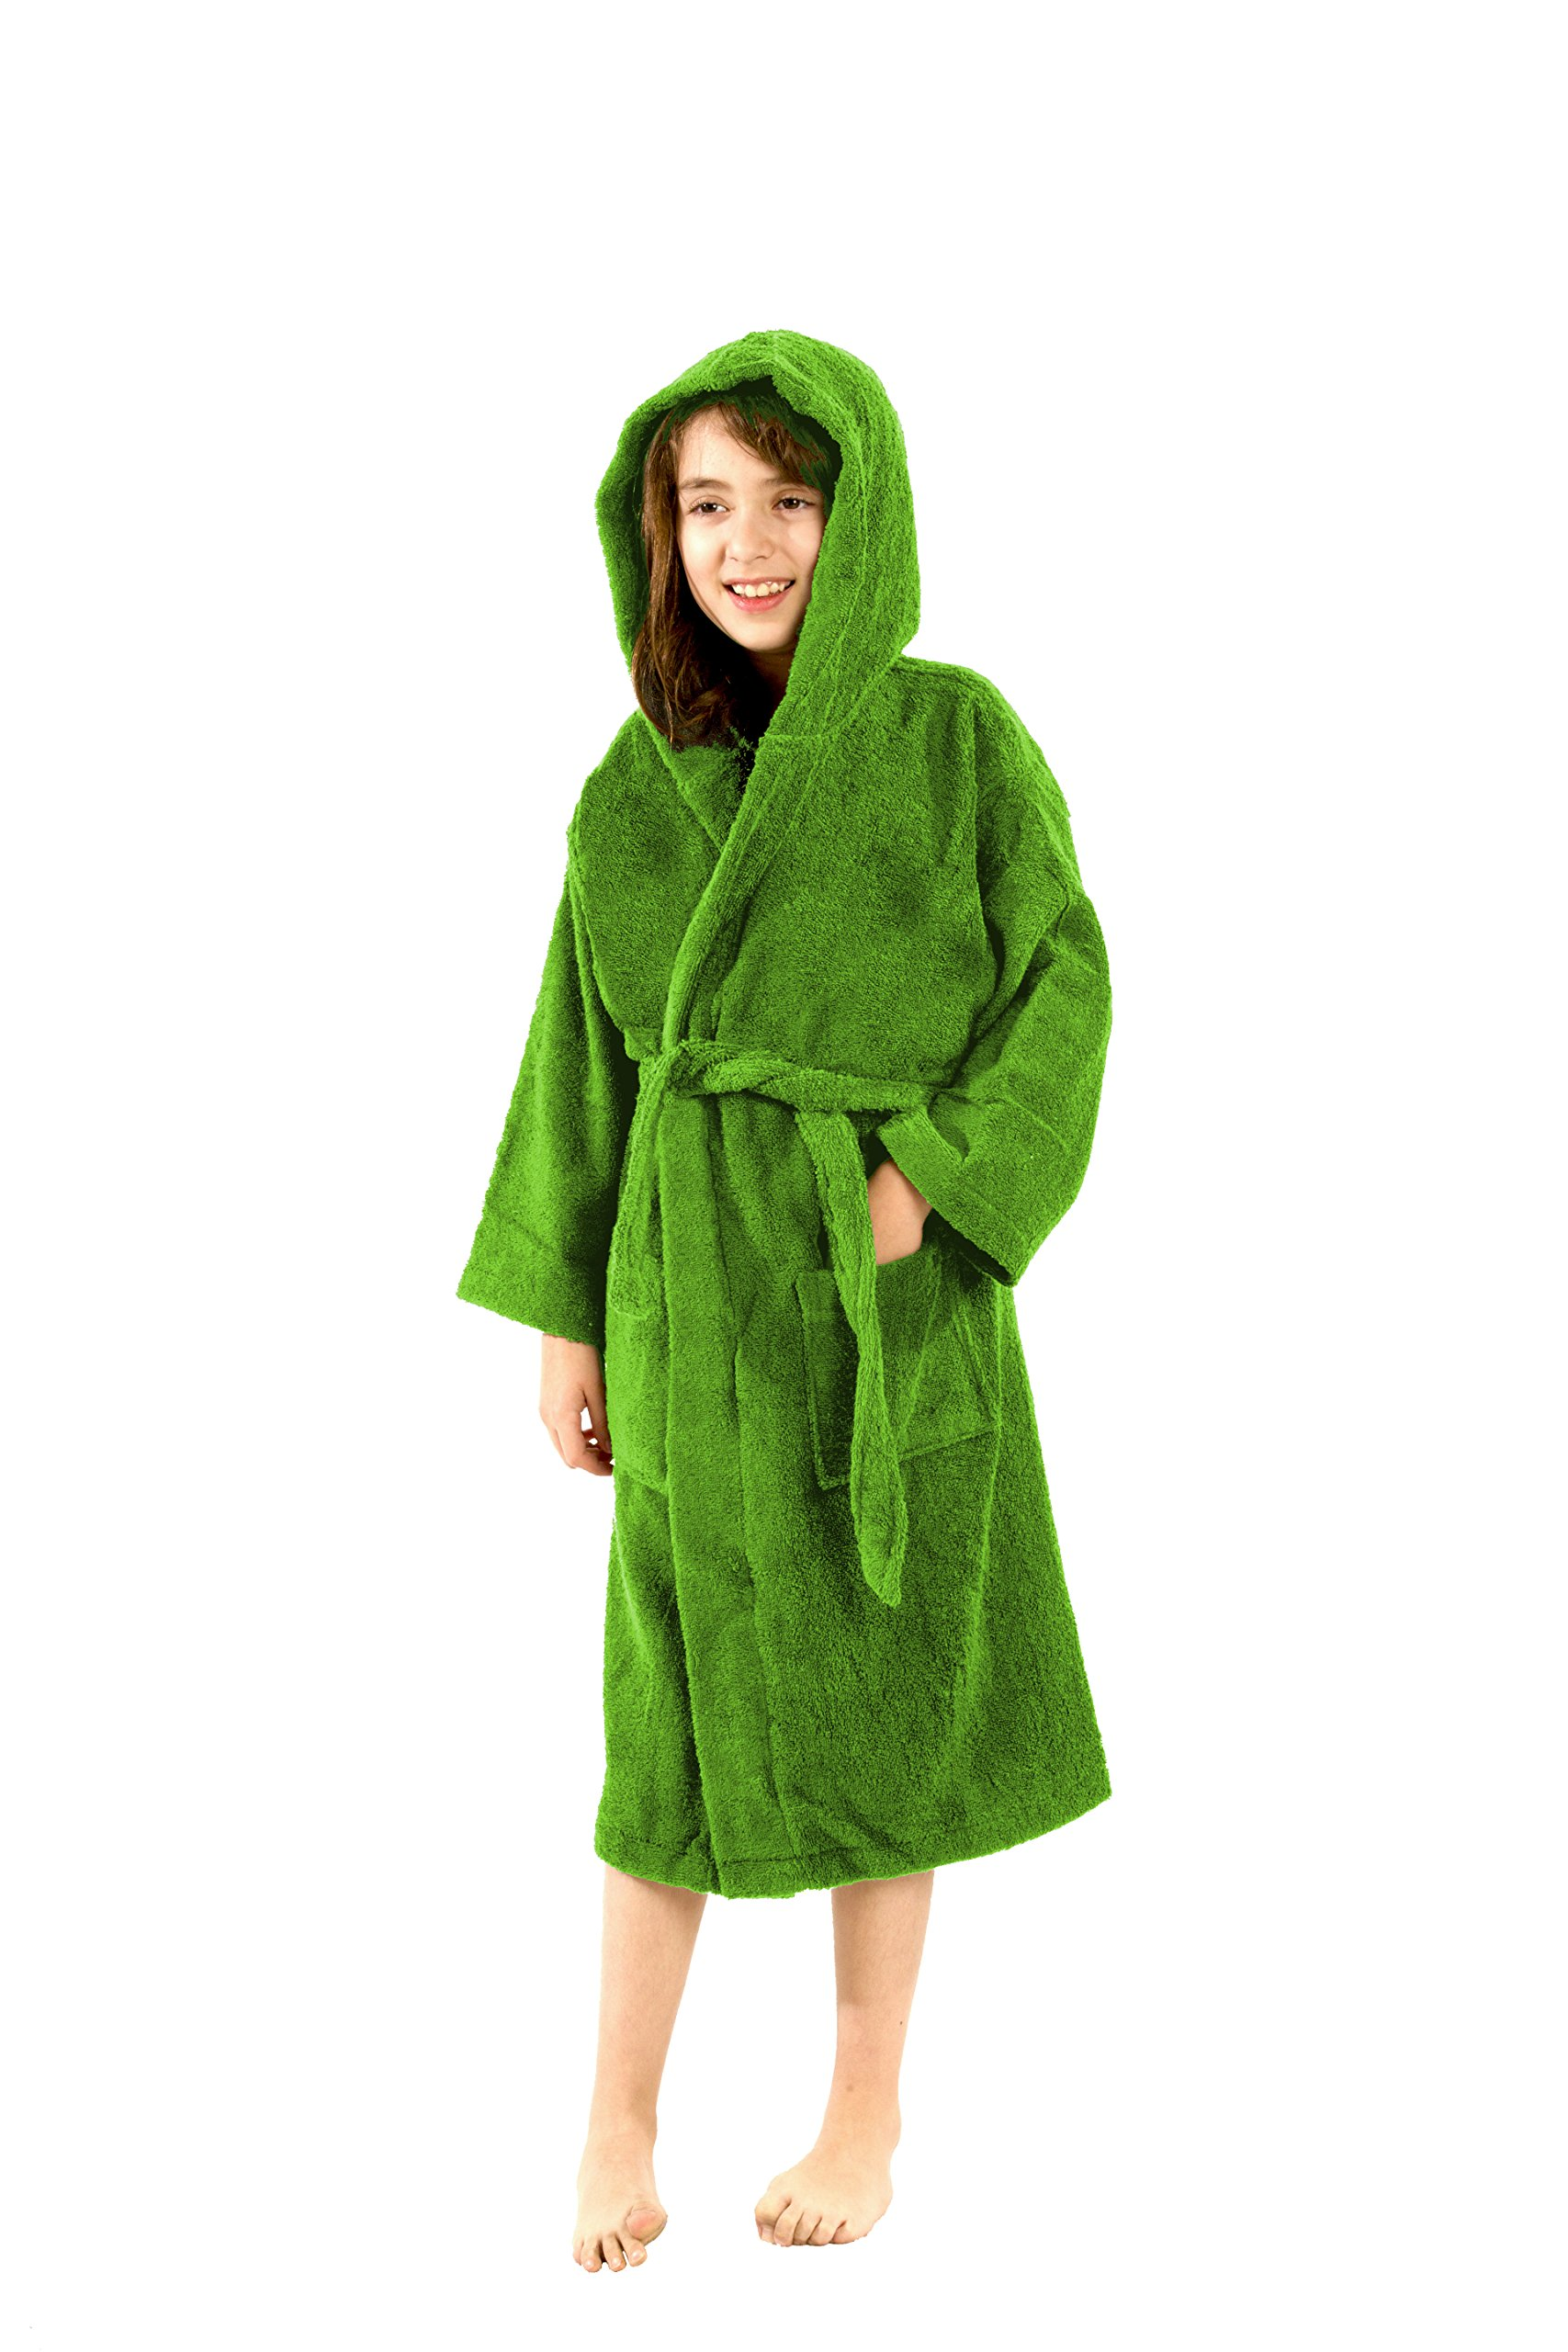 Personalized Kids Hooded Robes, Apple Green, LARGE Size